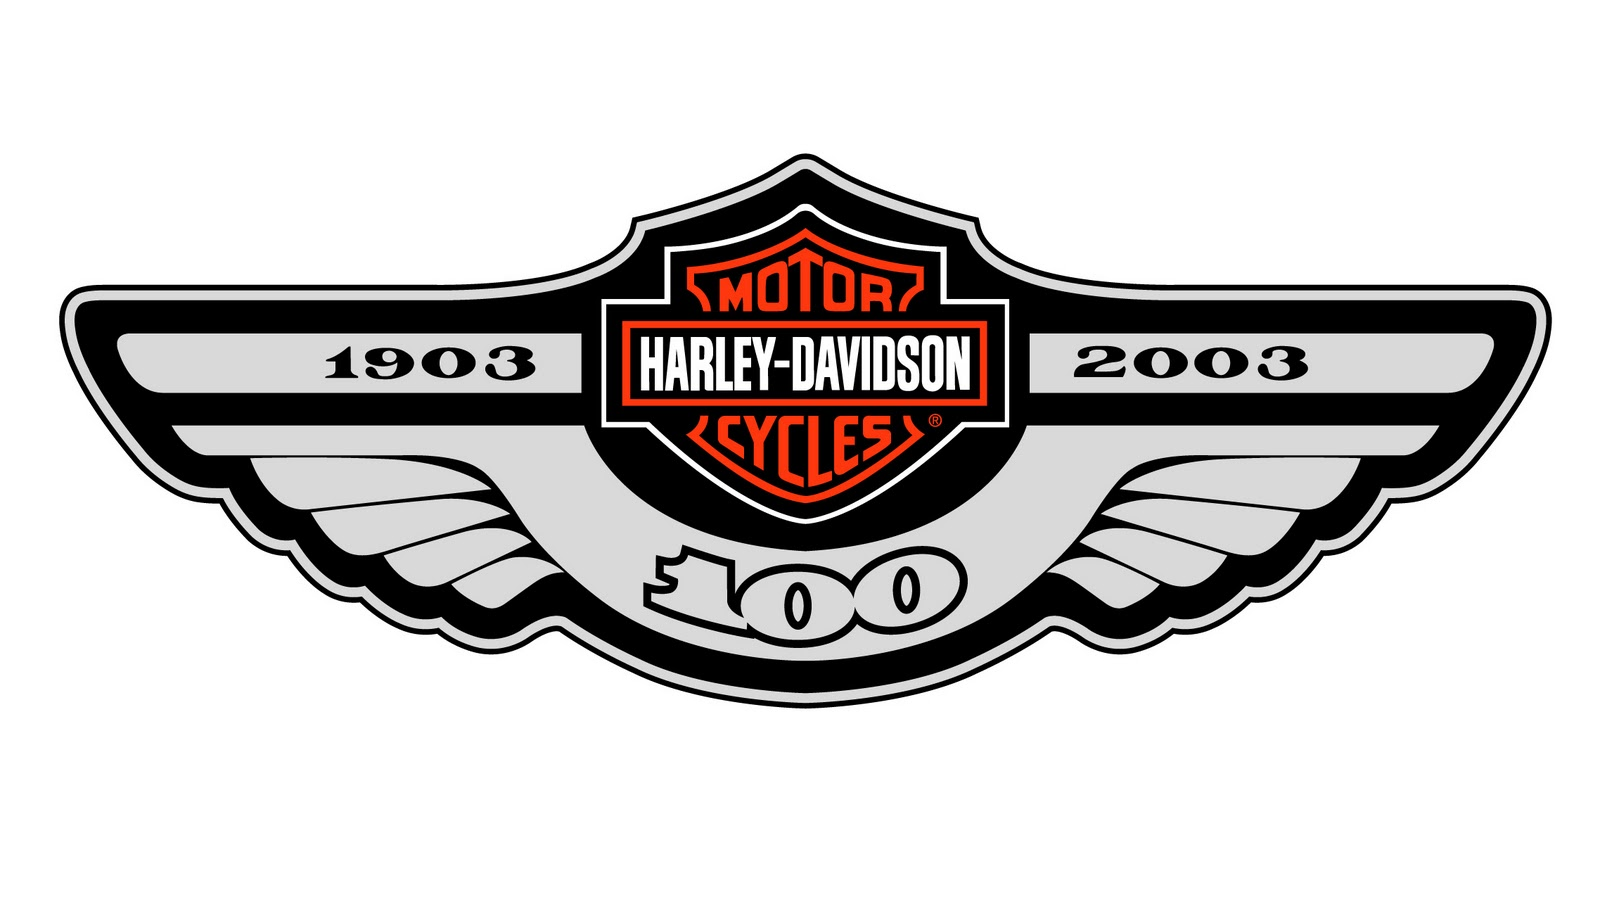 Harley Davidson clipart high resolution Years HD Logo Download Wallpaper